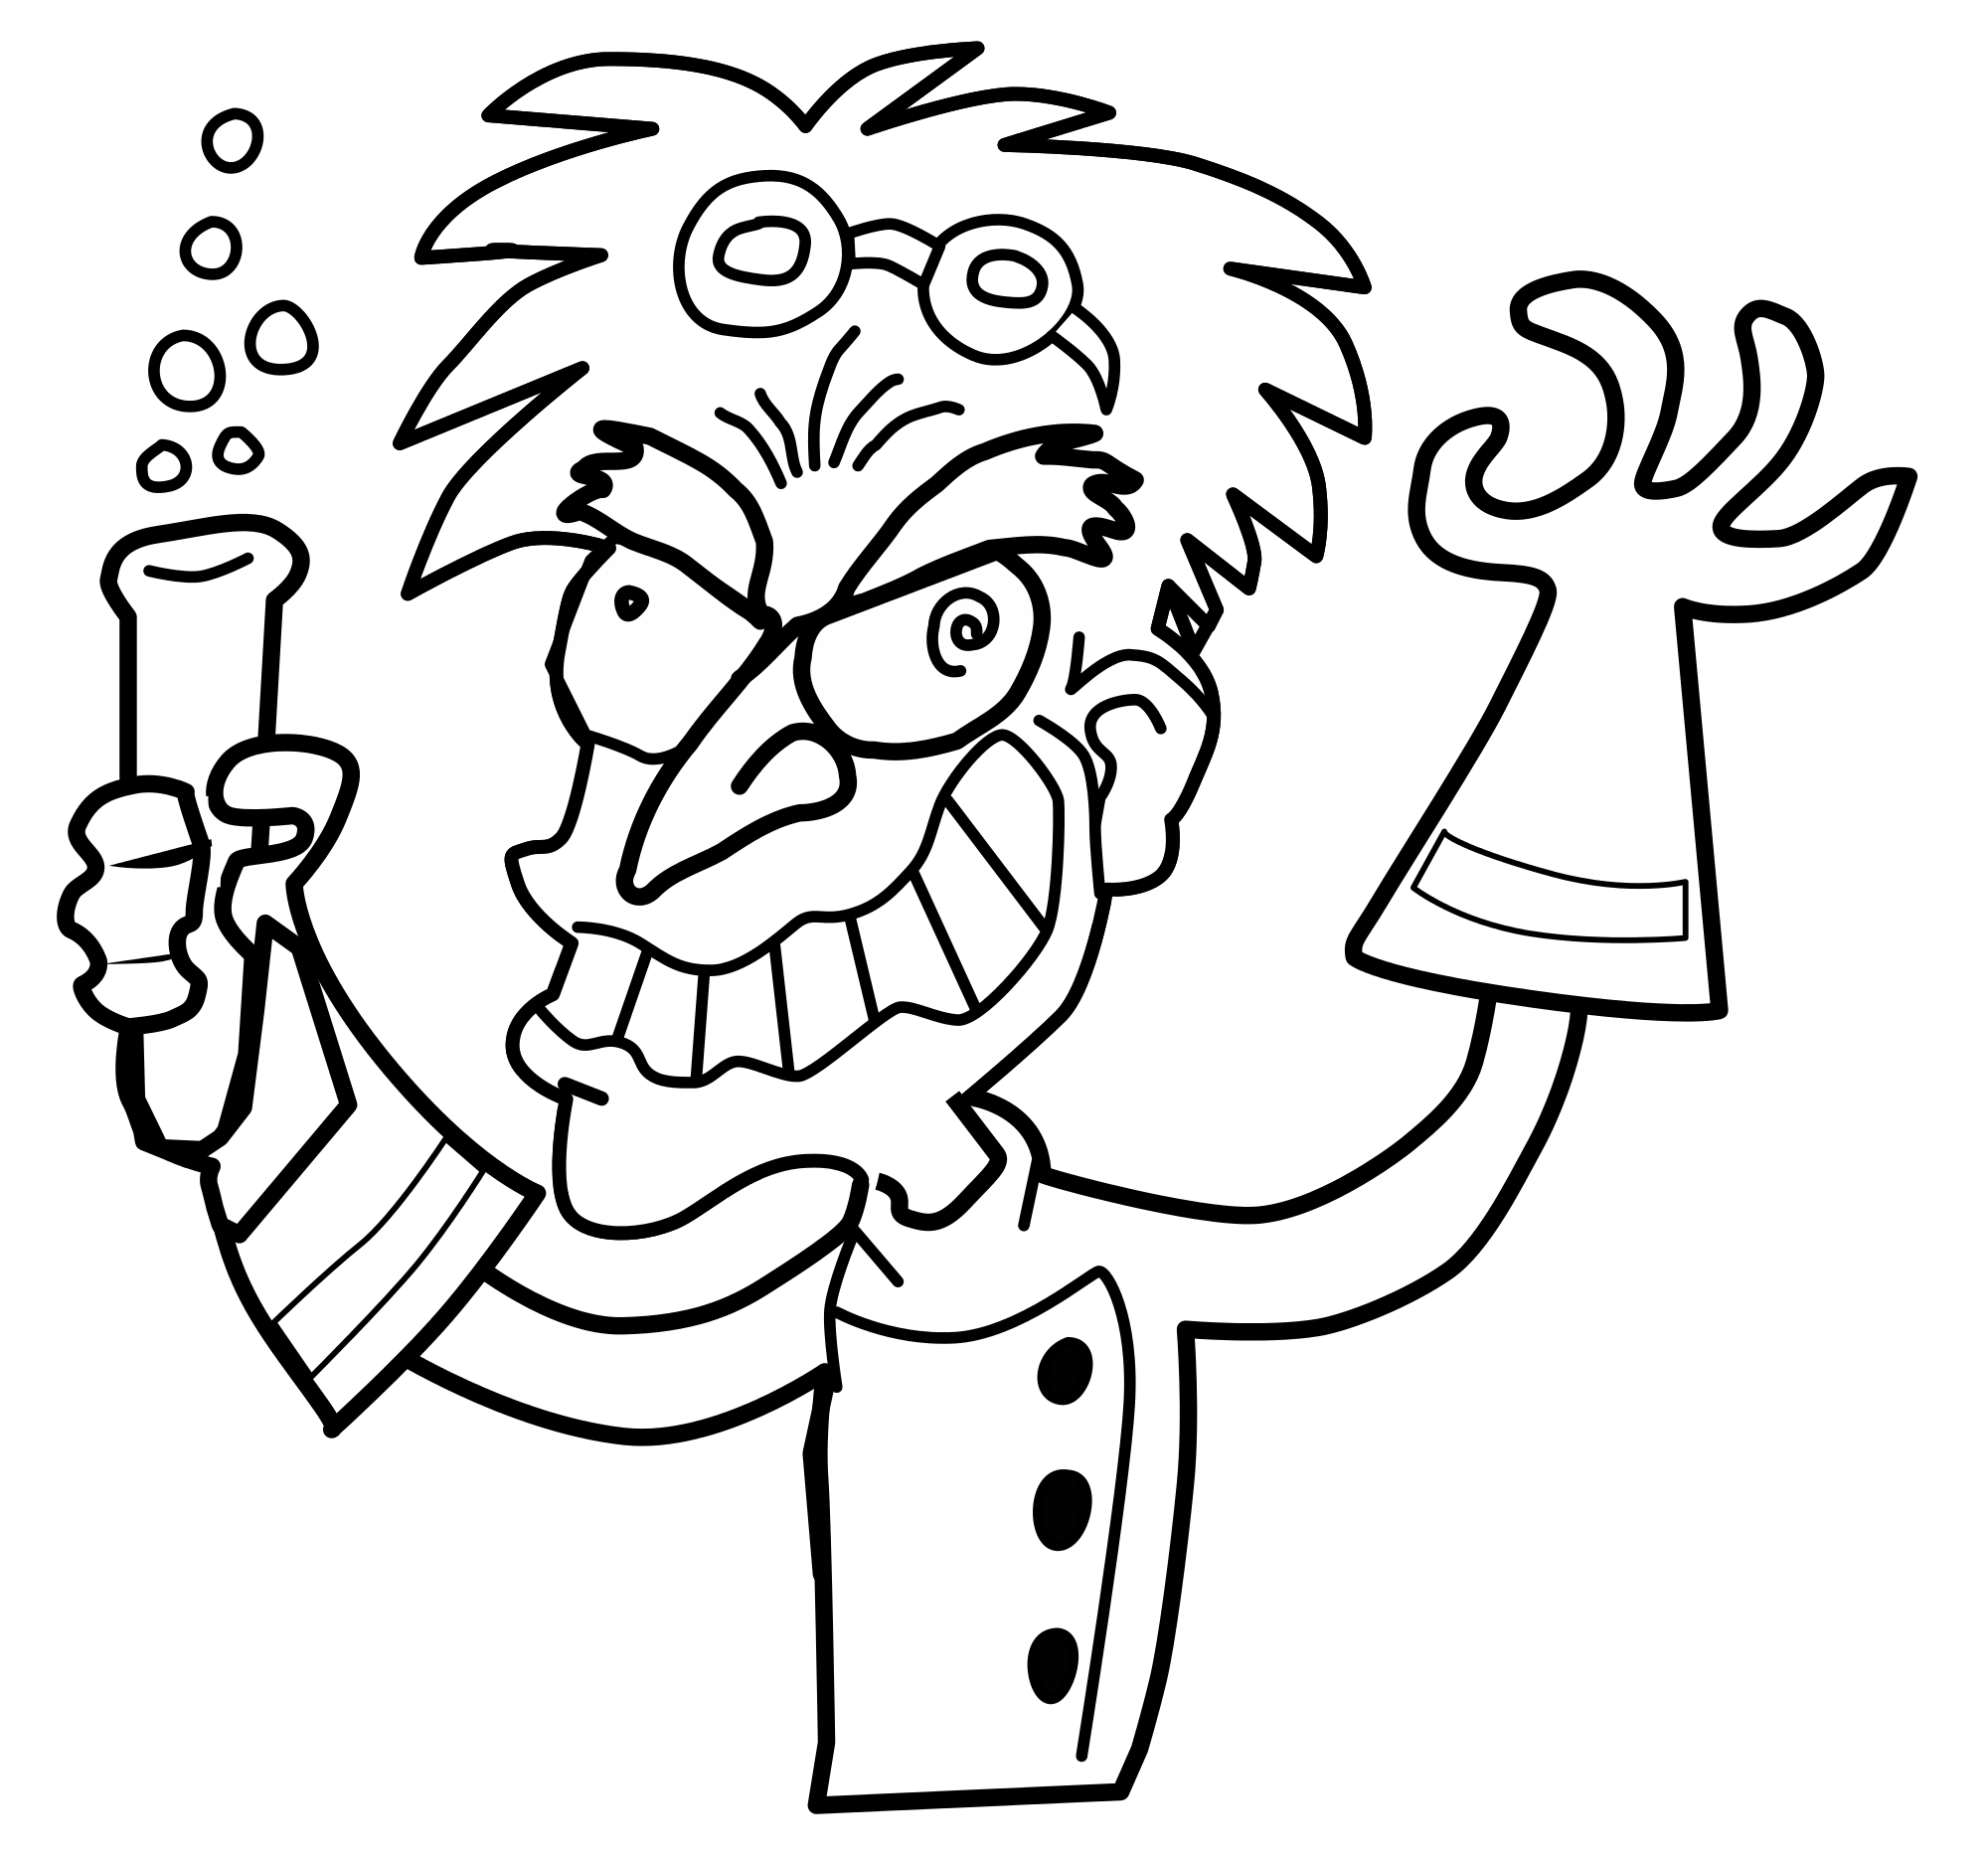 Mad drawing black and white. File scientist bw svg